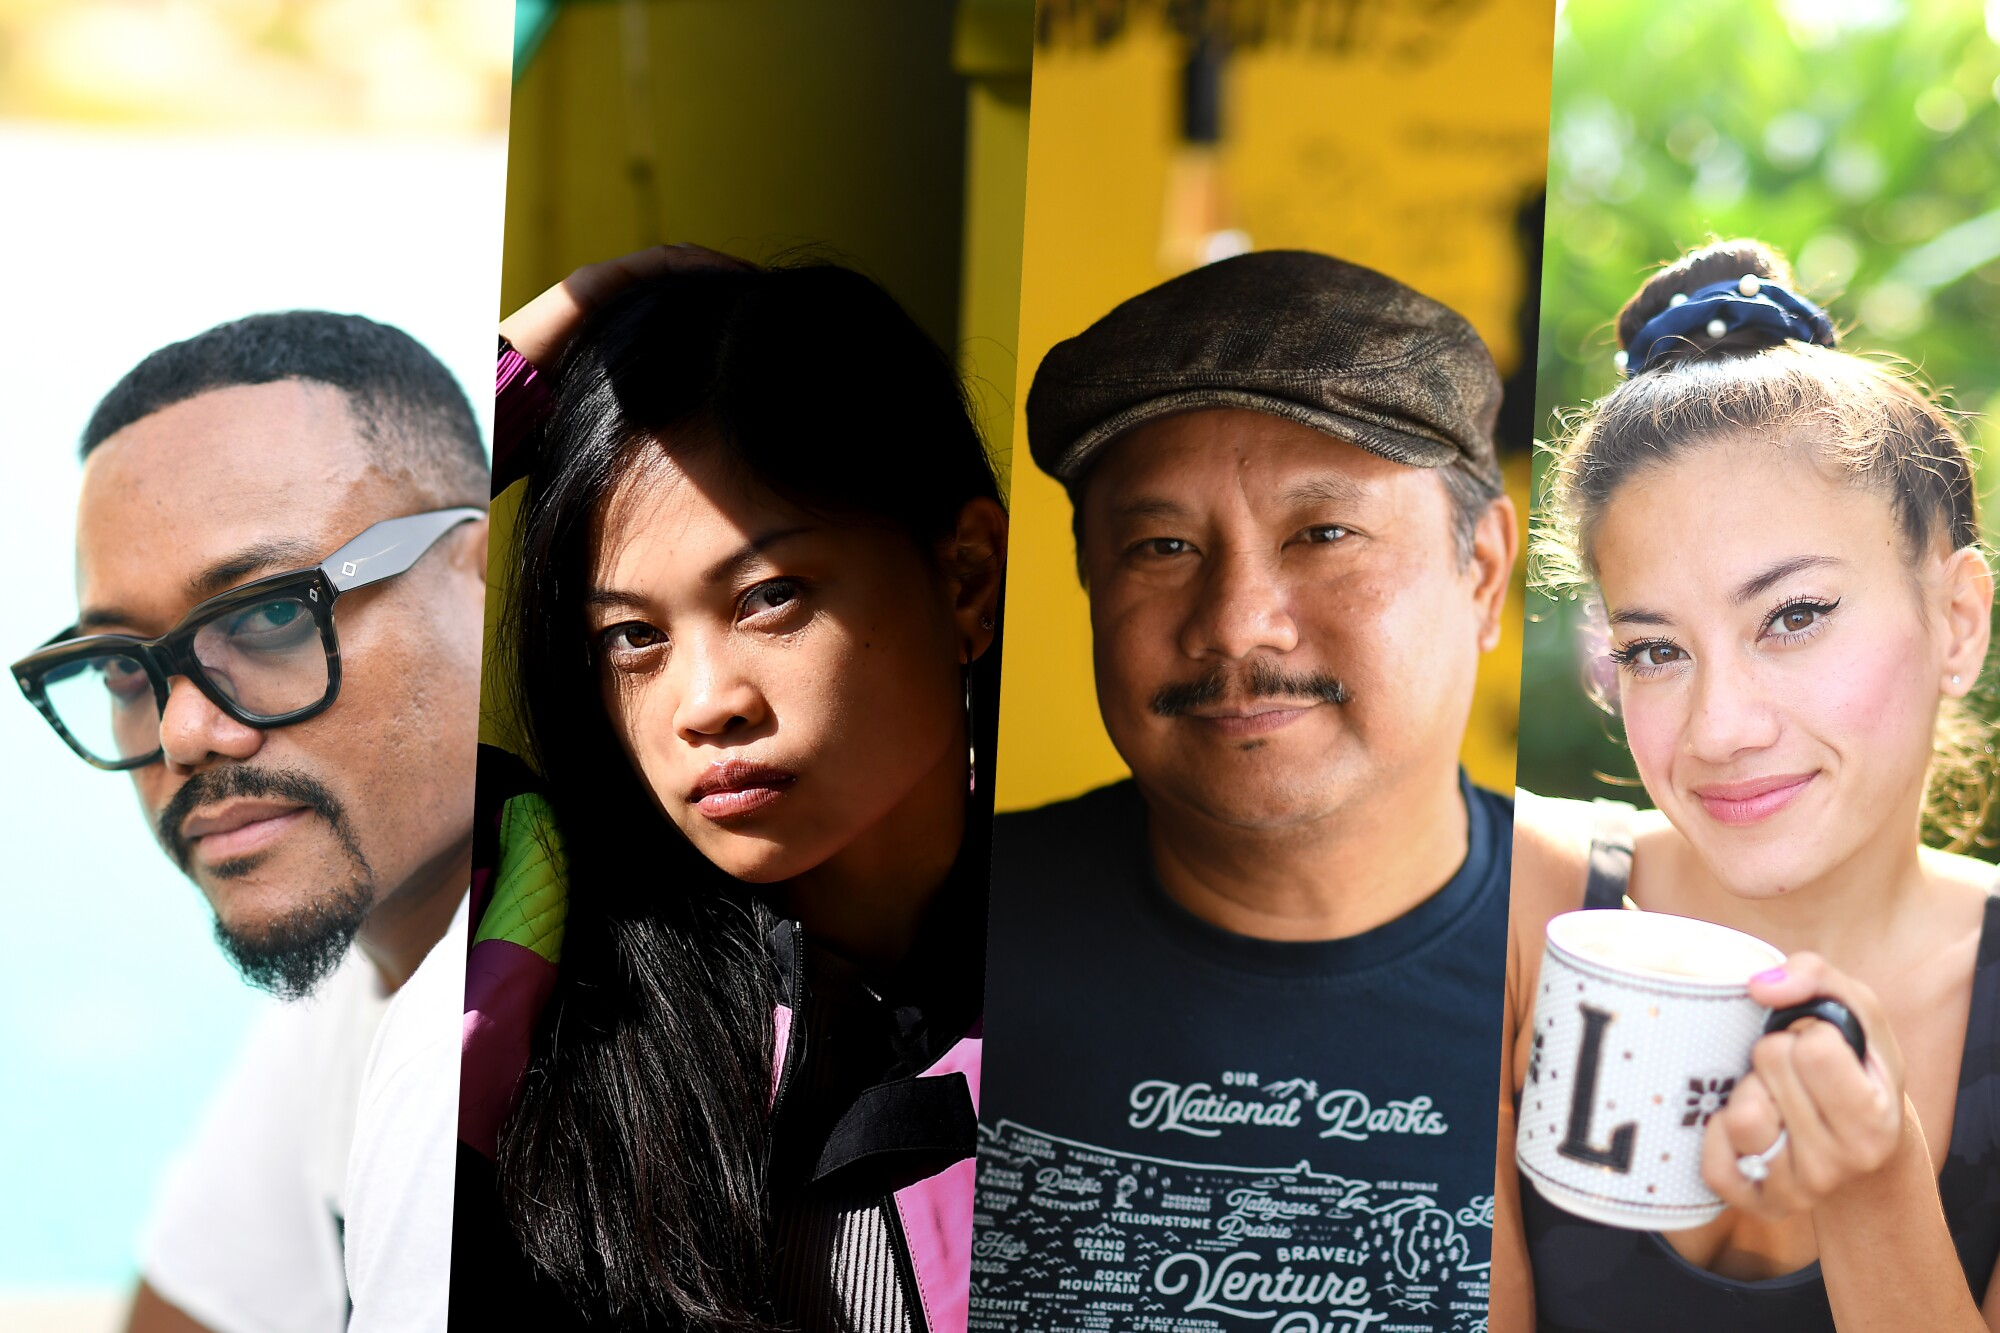 Appearing Aug. 29 for 'A Night of 'Pinoy'tainment,' from left, Apl.de.ap, Ruby Ibarra, Rex Navarette and Lila Hart.